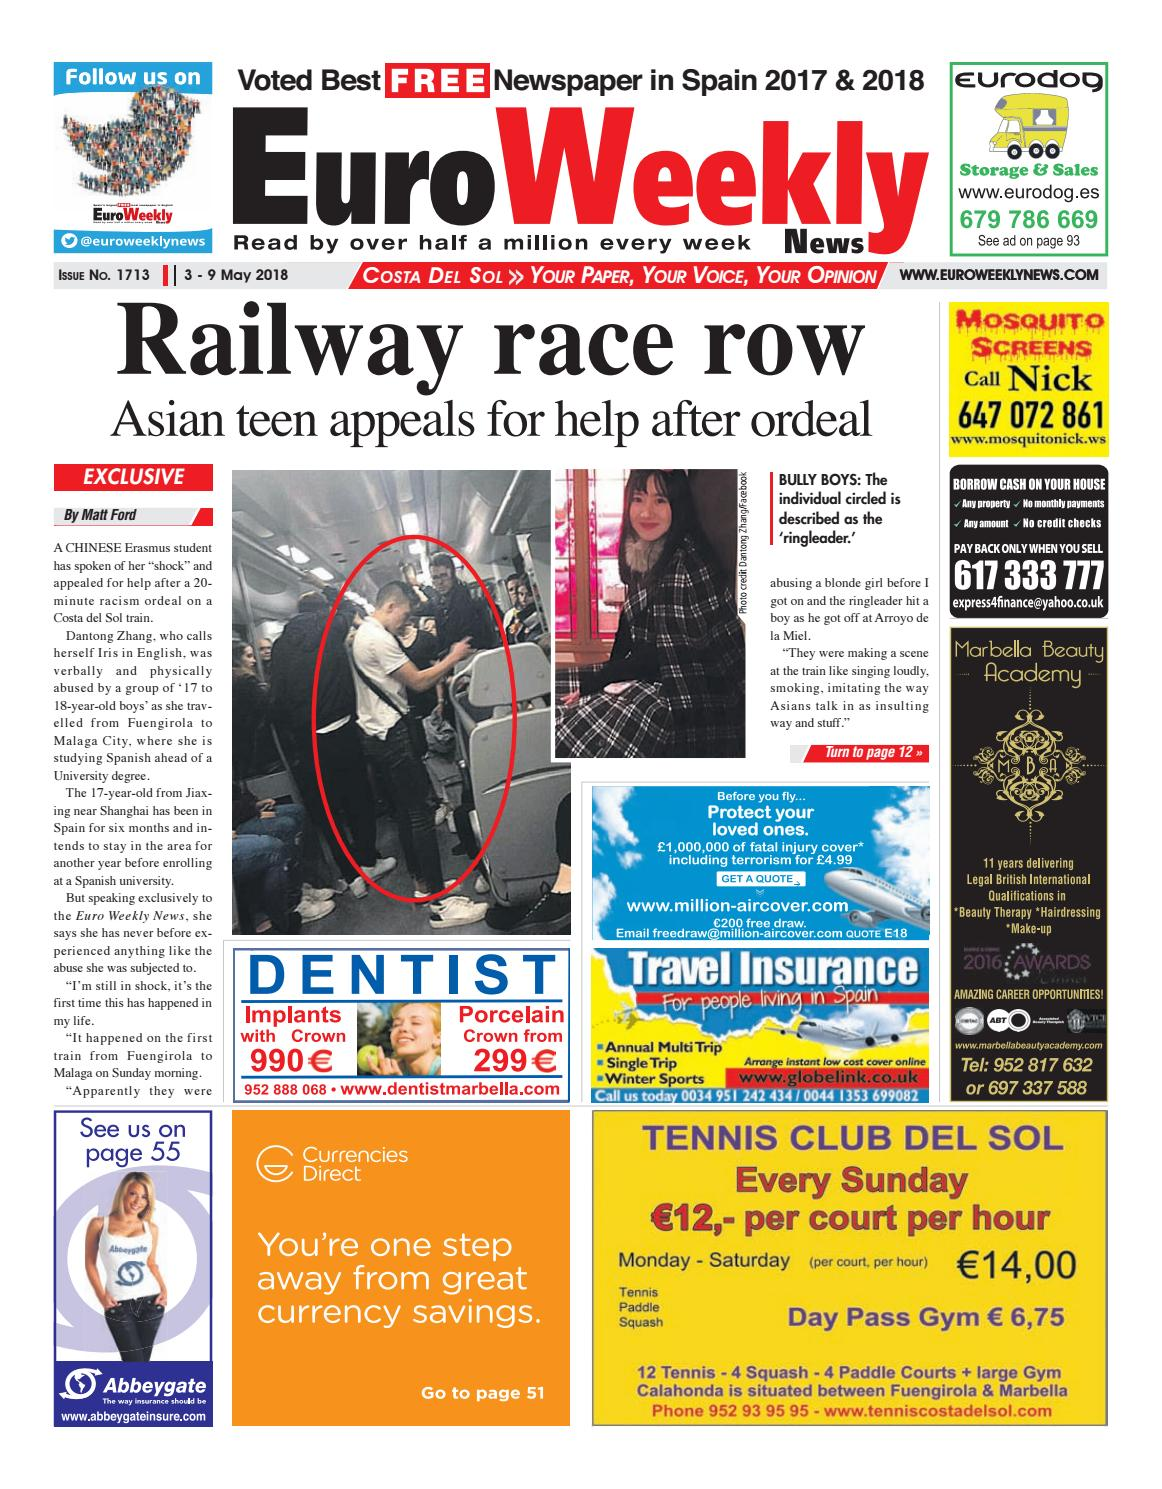 Euro Weekly News - Costa del Sol 3 - 9 May 2018 Issue 1713 by Euro Weekly  News Media S.A. - issuu